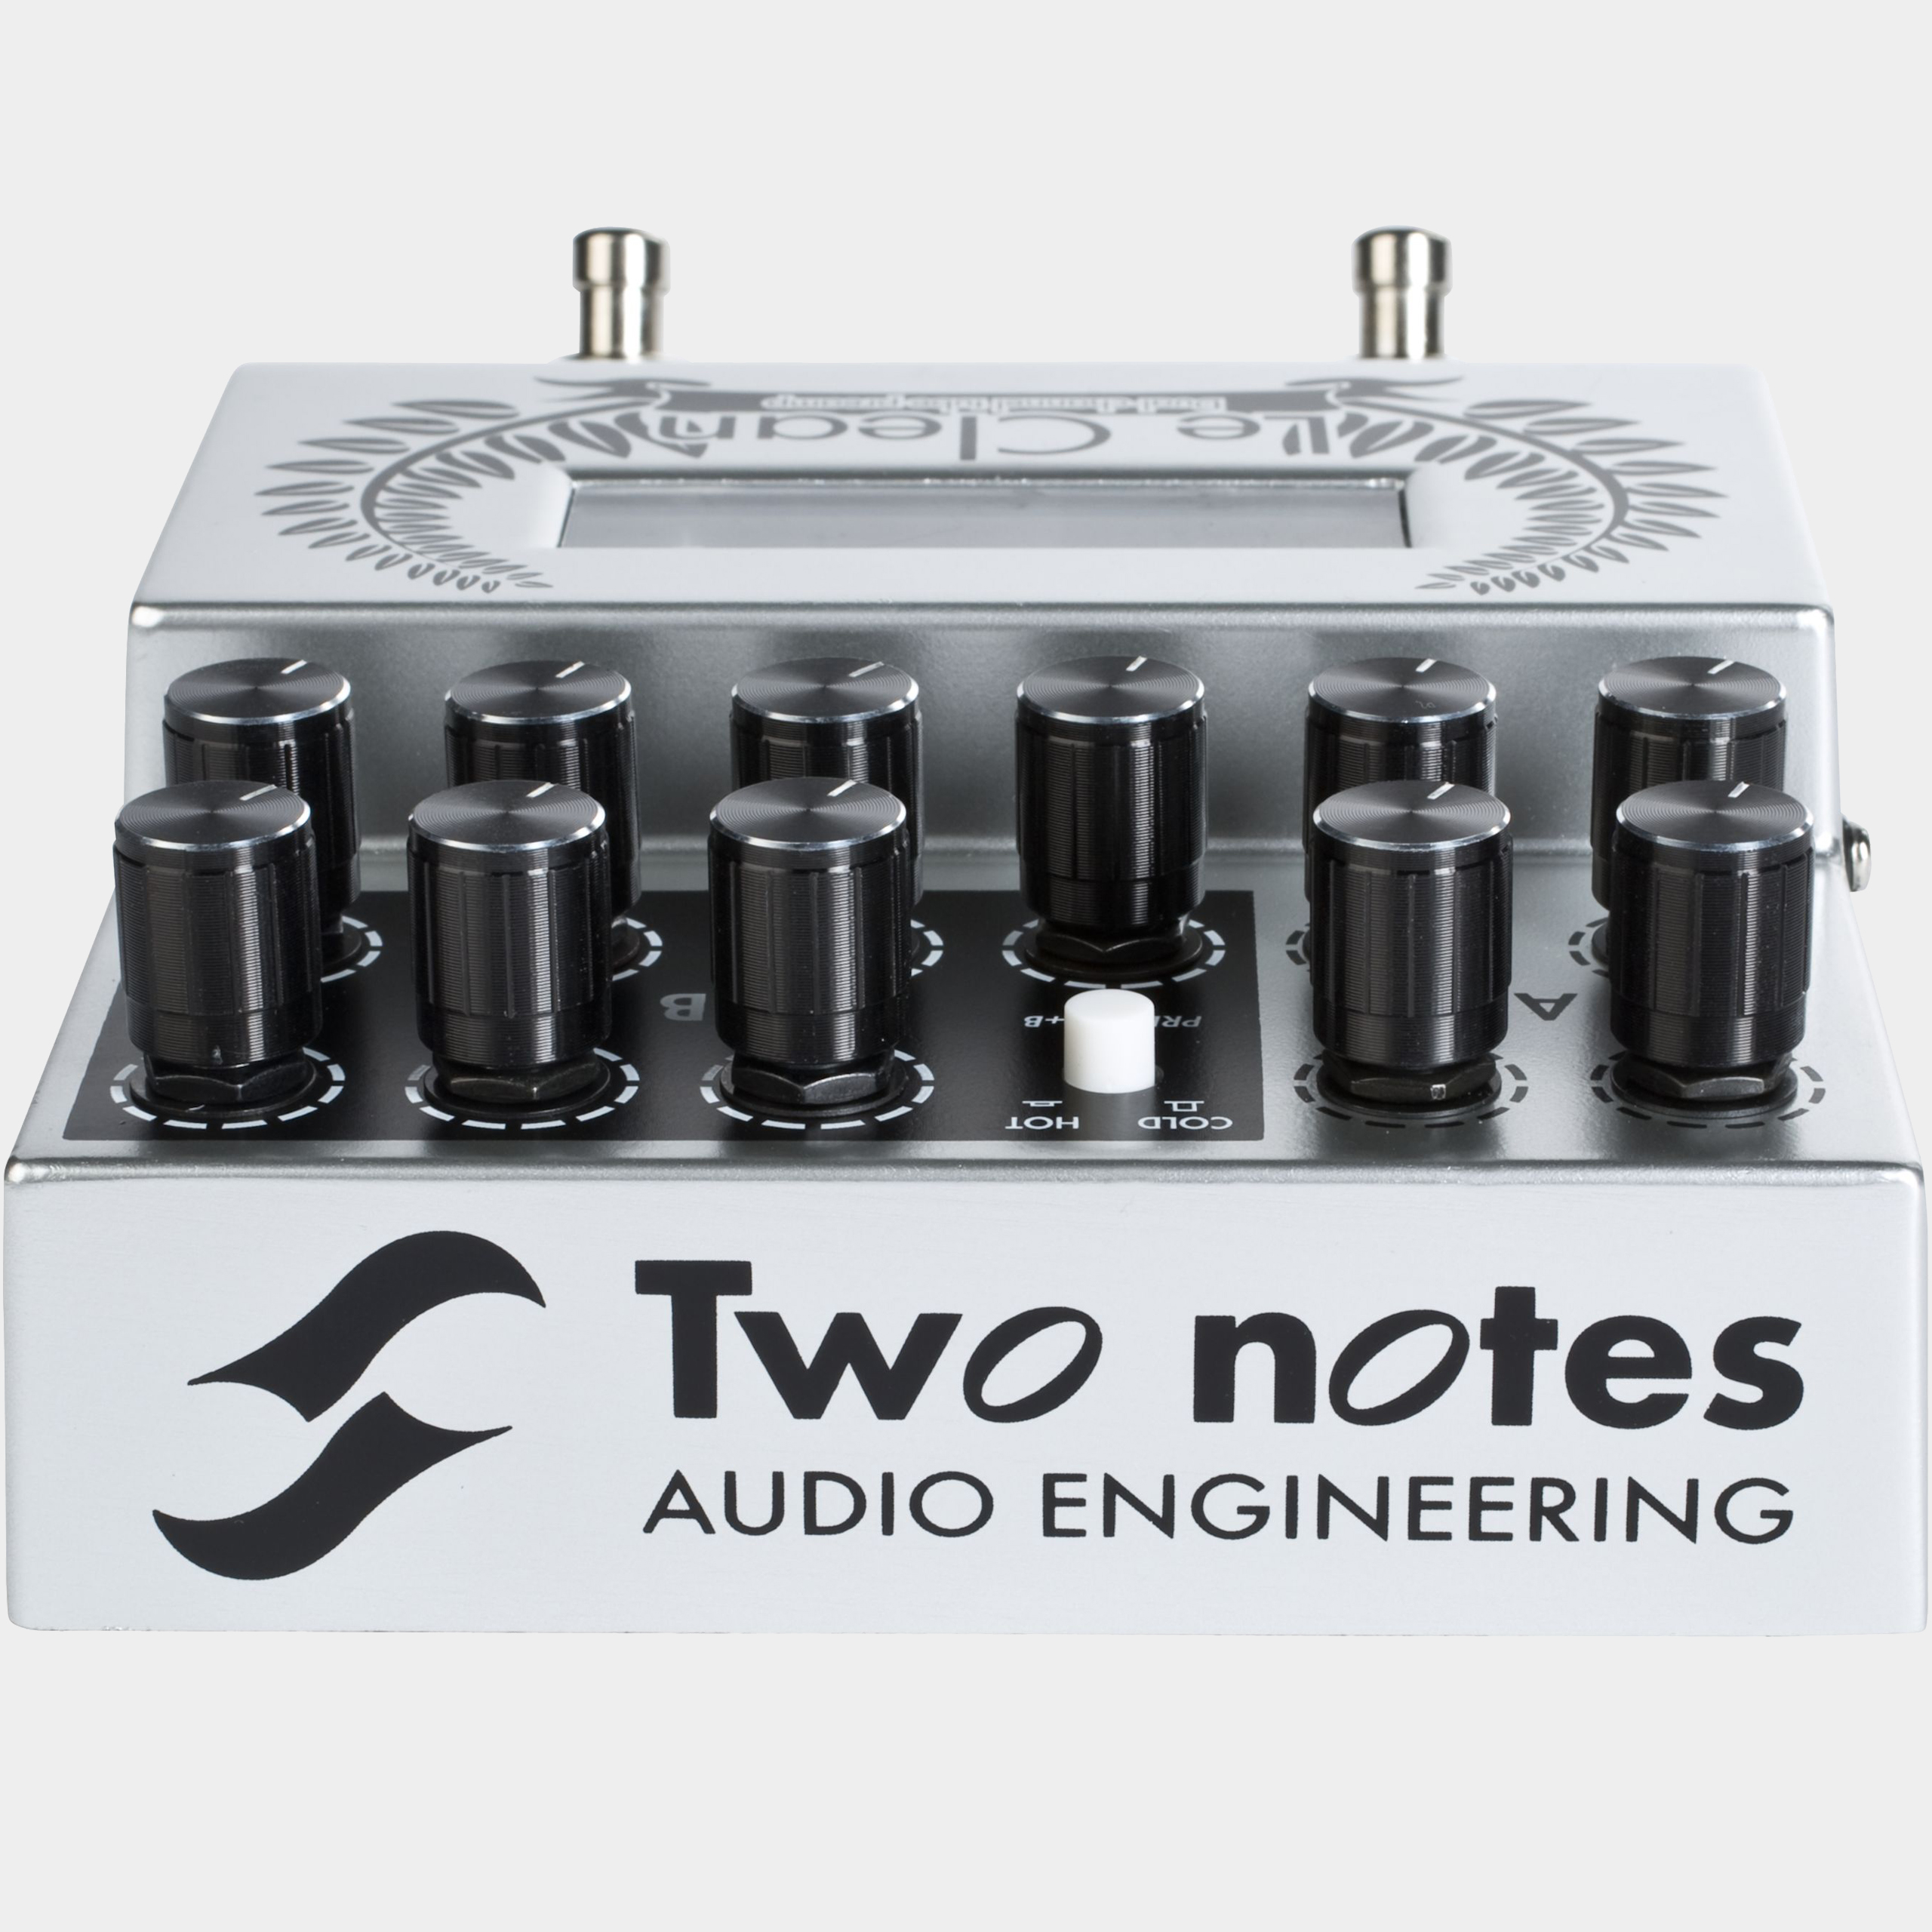 TWO NOTES Le Clean Rückseite